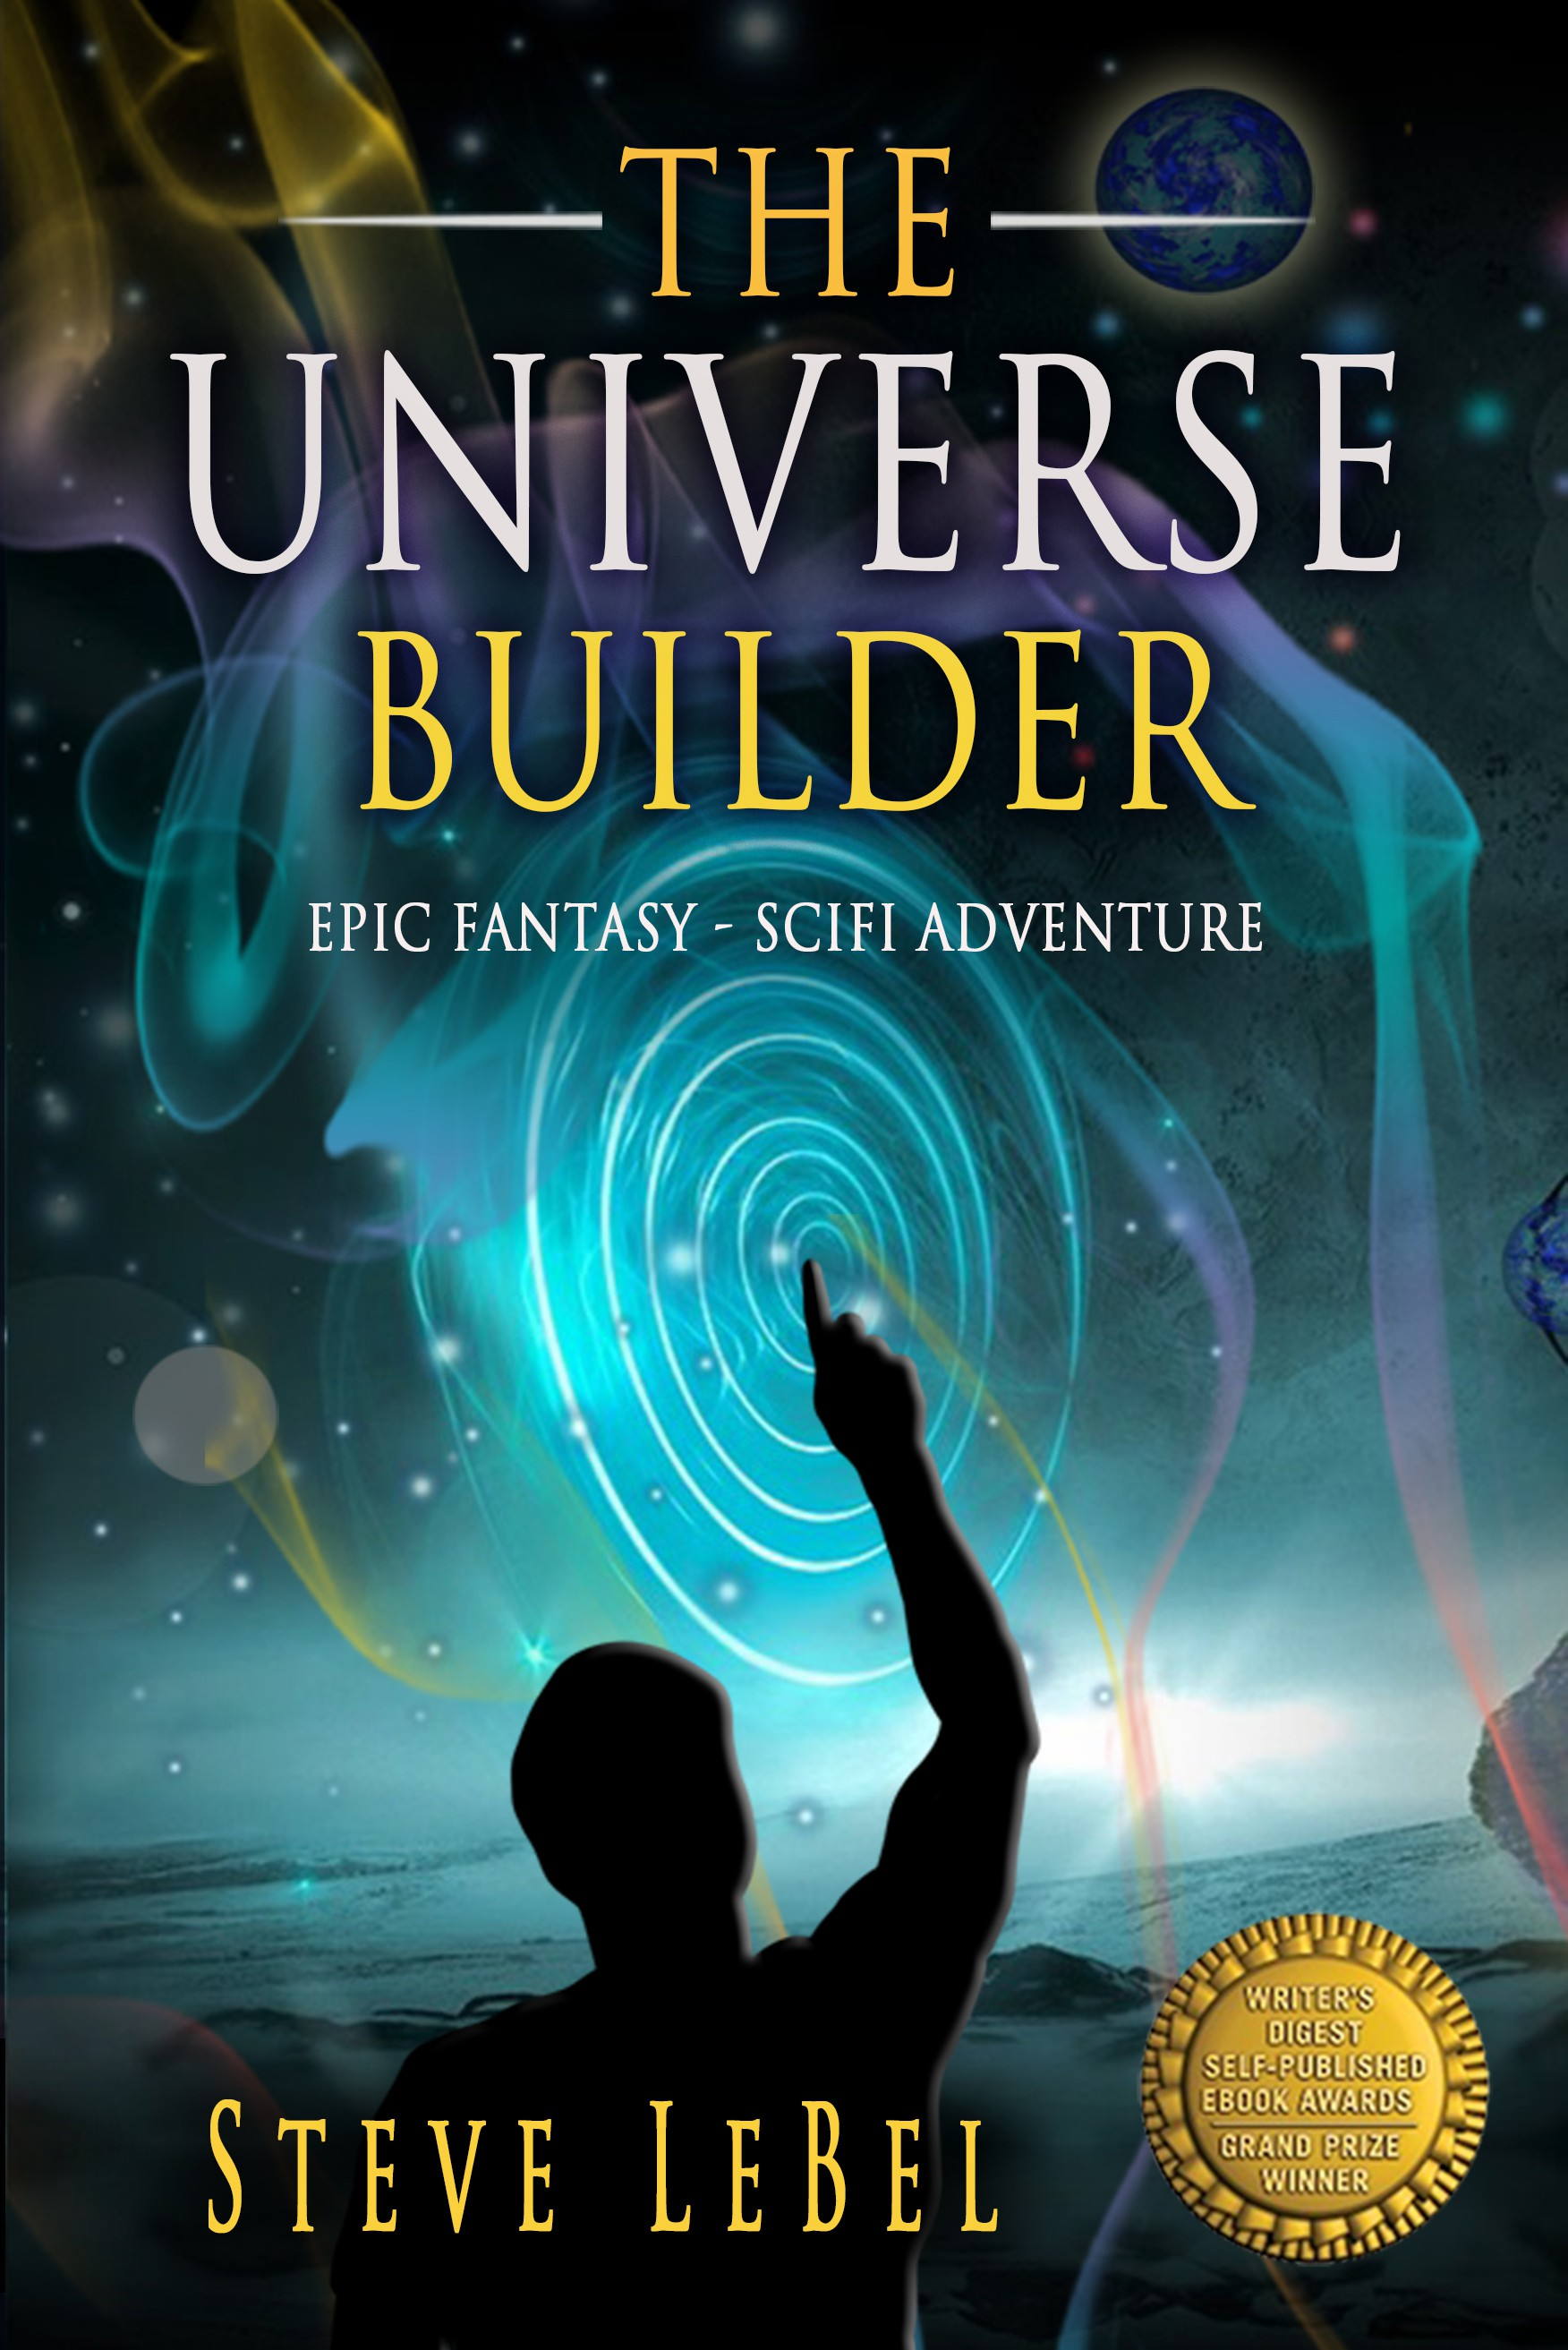 Book cover for a god who builds universes for a living.